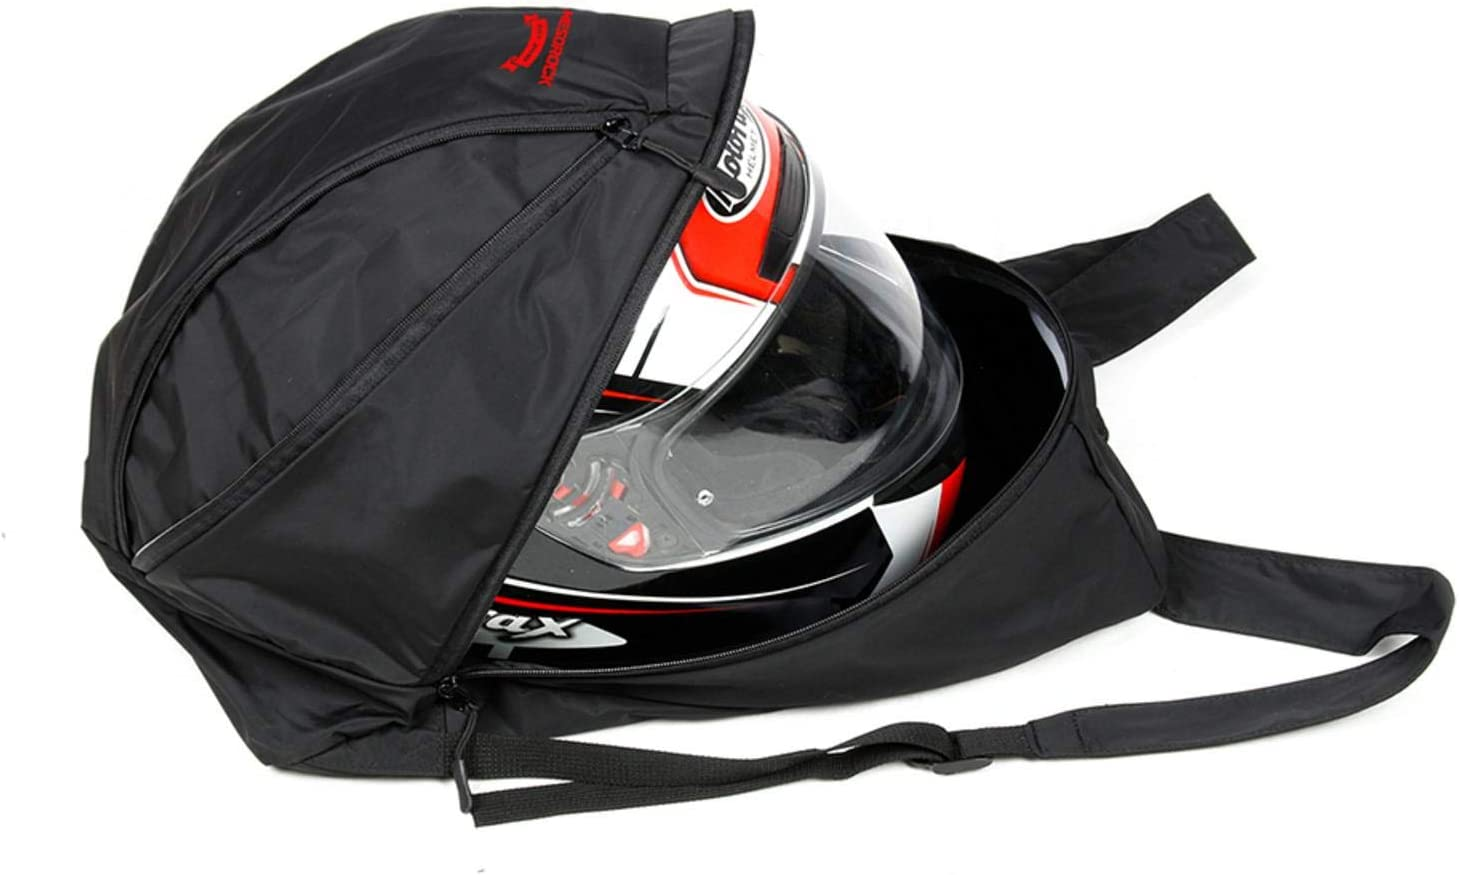 Interesty Max 66% OFF Free shipping 20-28L Motorcycle Backpack Large Waterproof Expandable